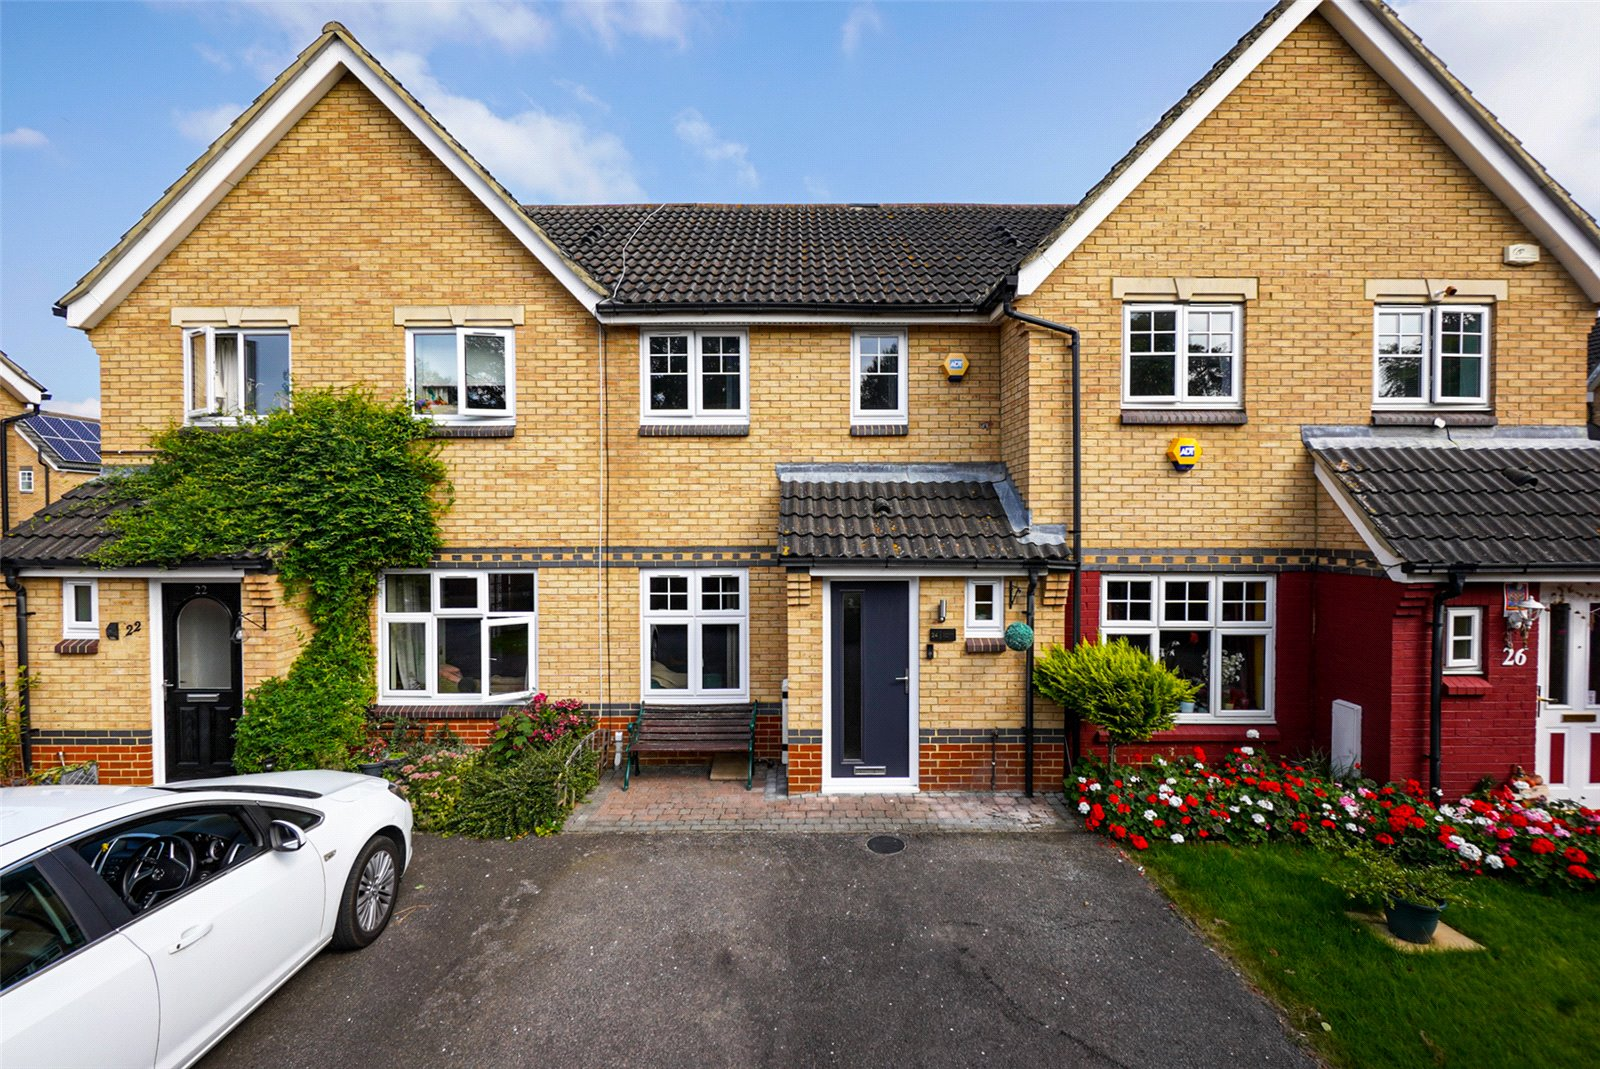 2 bed house for sale in Watersmeet Close, Maidstone, ME15